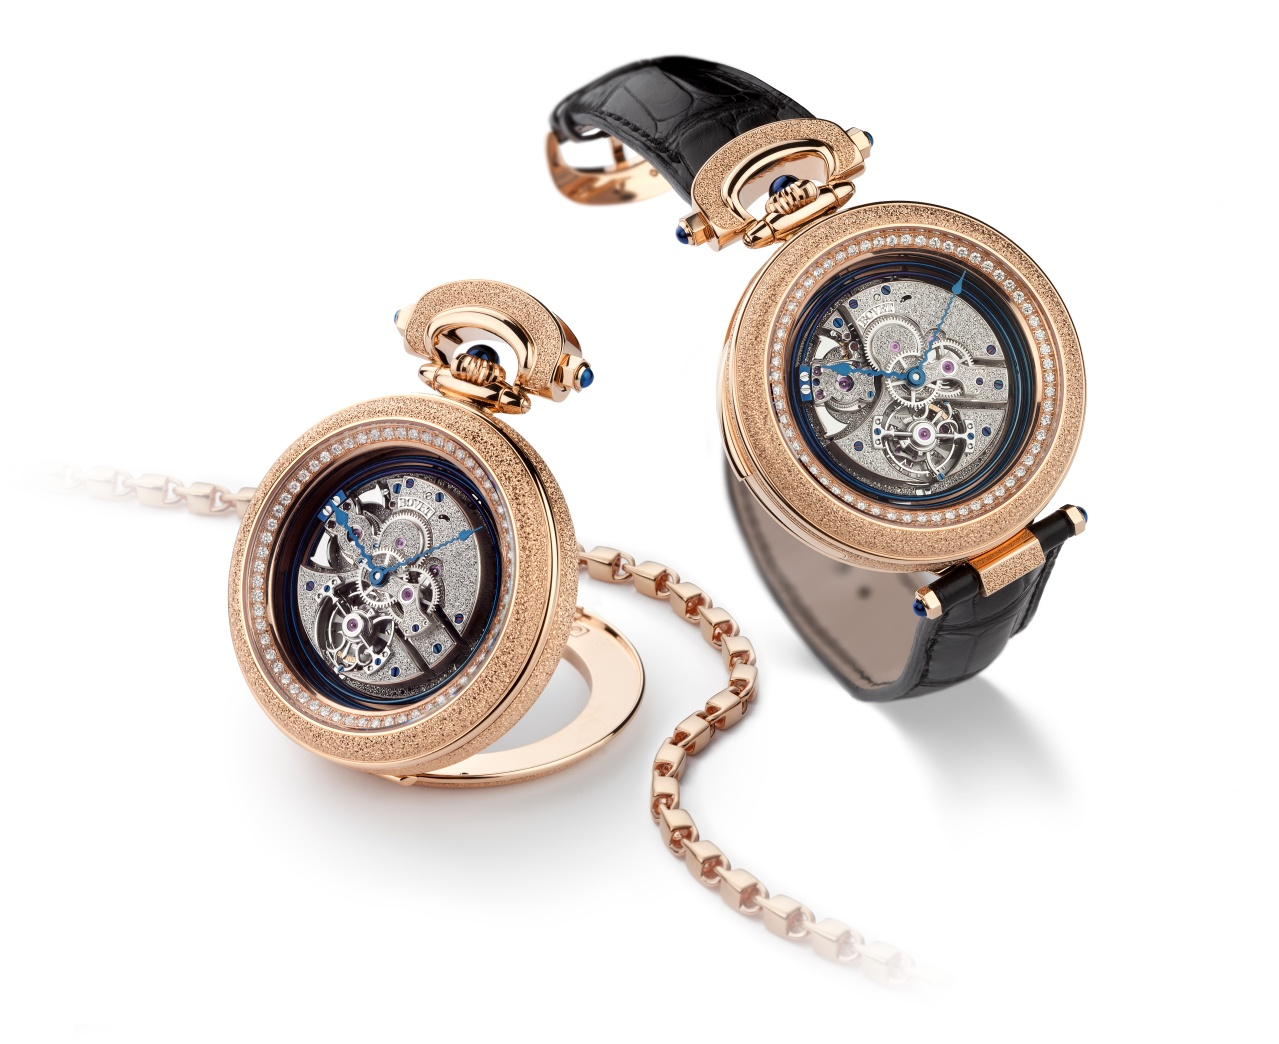 Bovet Watch   Amadeo Fleurier Grandes Complications   Ref. Nr. AIRM007-C1234    Call 312-944-3100  | For Availability